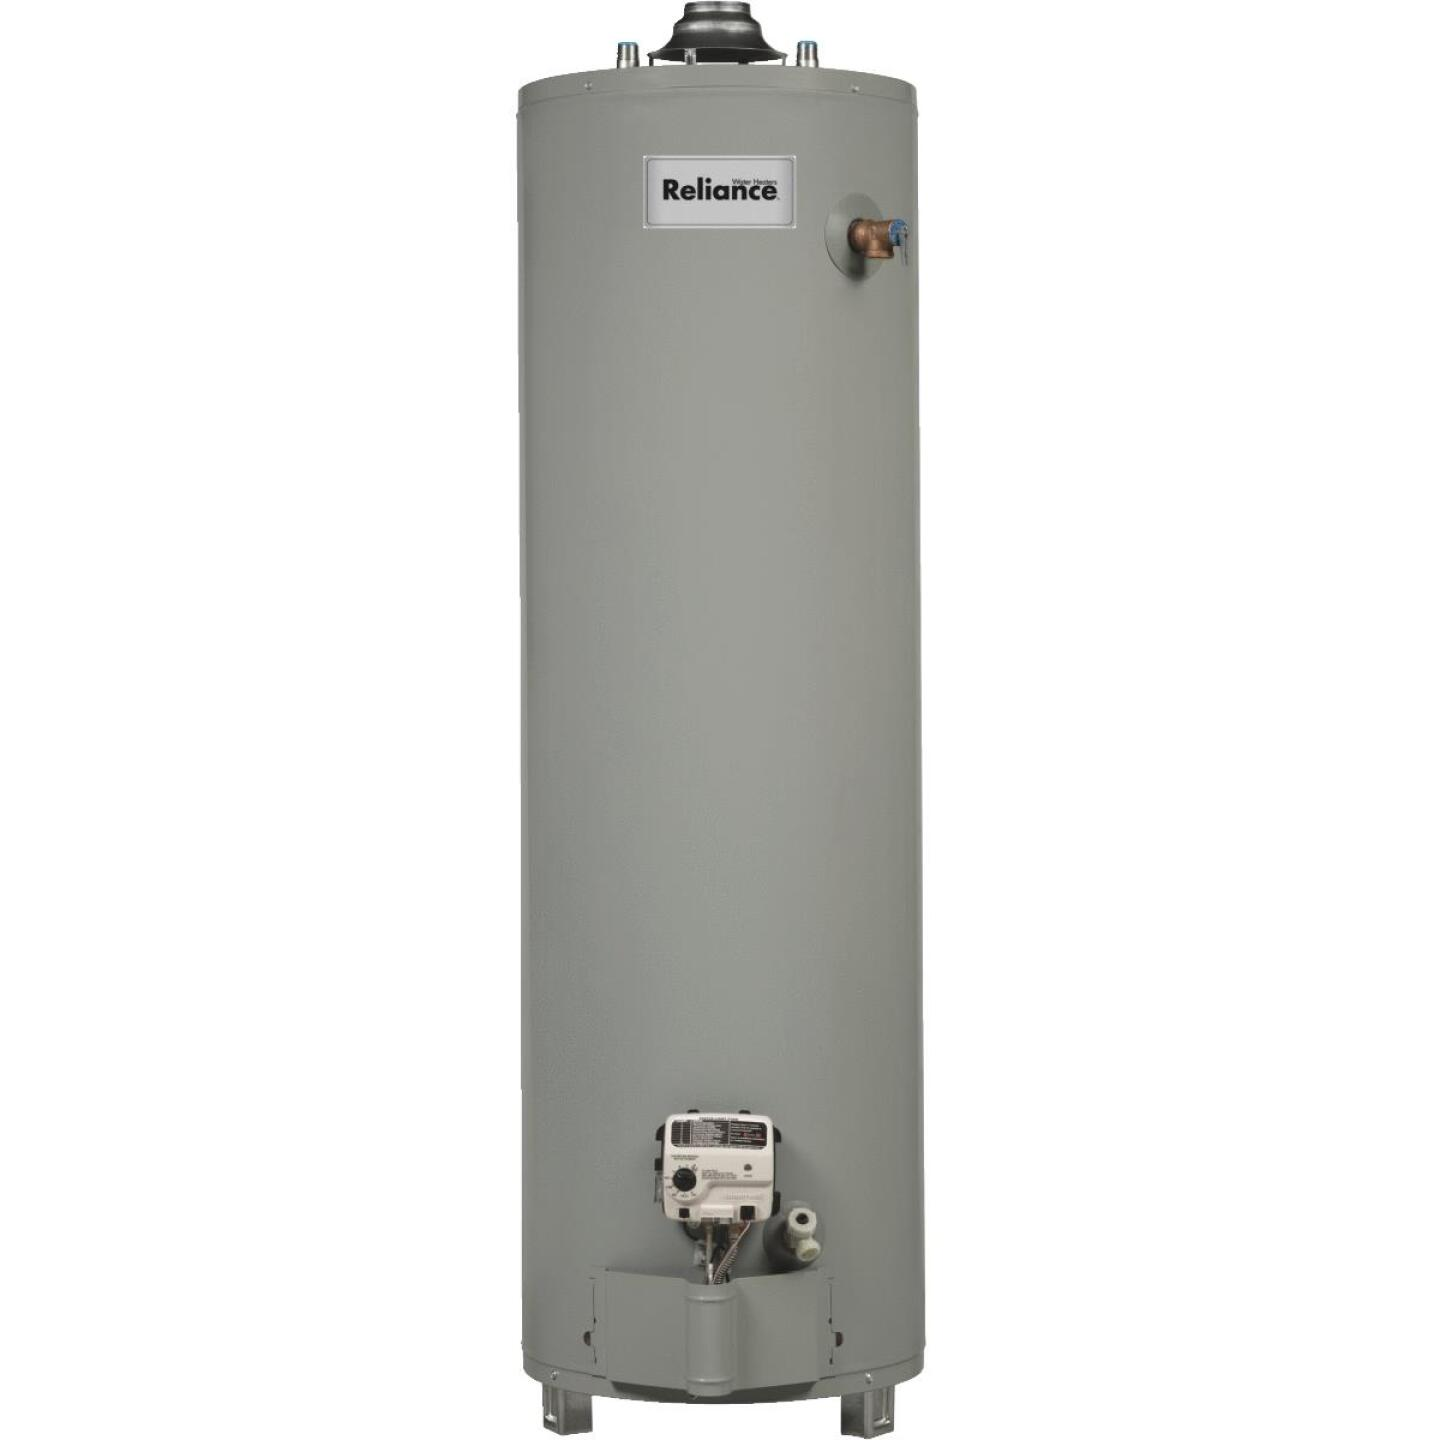 Reliance 30 Gal. Tall Ultra Low NOx 6yr 40,000 BTU Natural Gas Water Heater Image 1